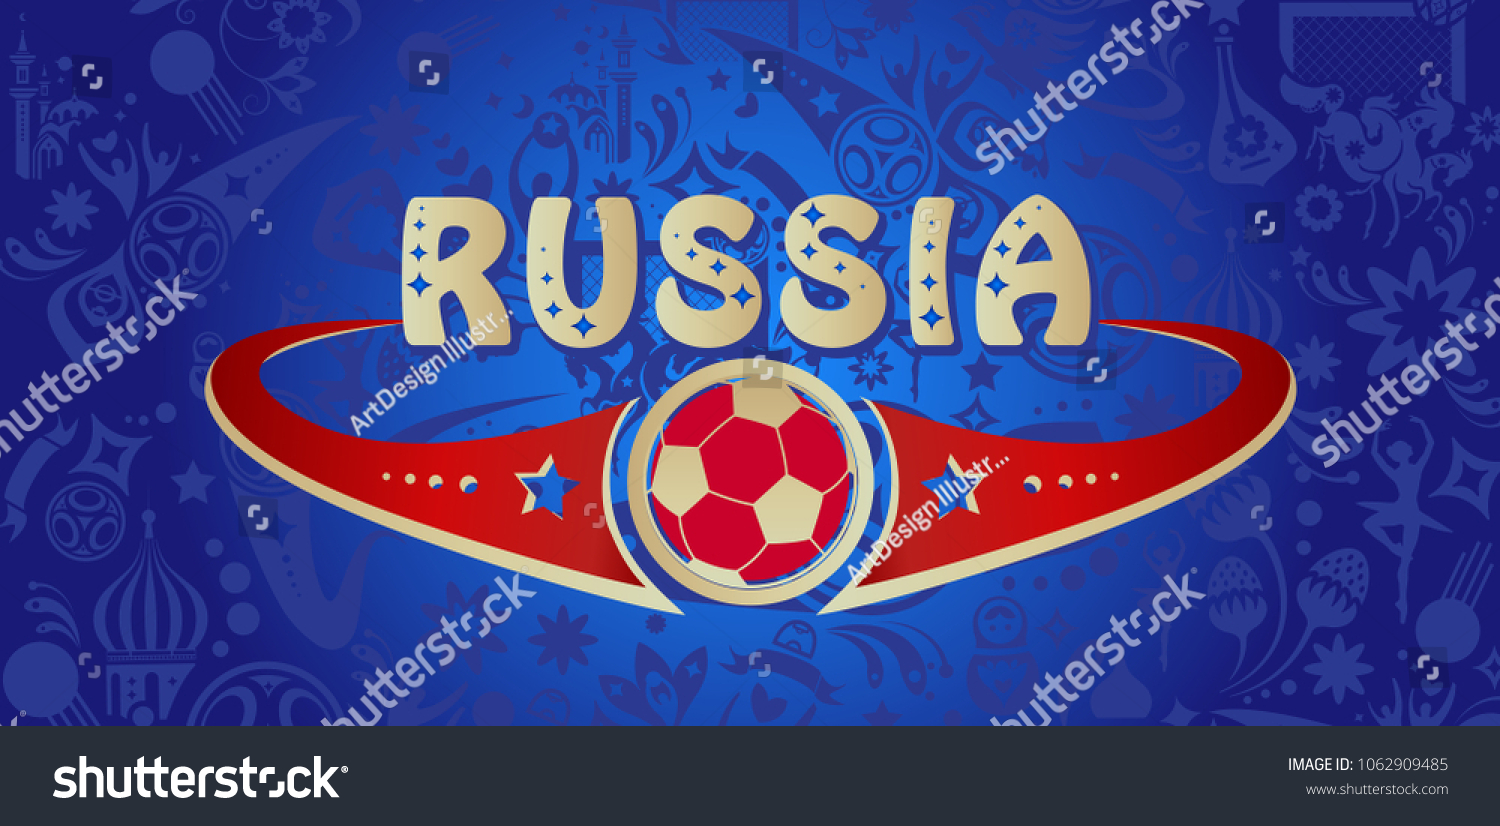 Welcome russia inscription gold text invitation stock vector welcome to russia inscription gold text invitation abstract dynamic background russian folk art tradition elements buycottarizona Gallery